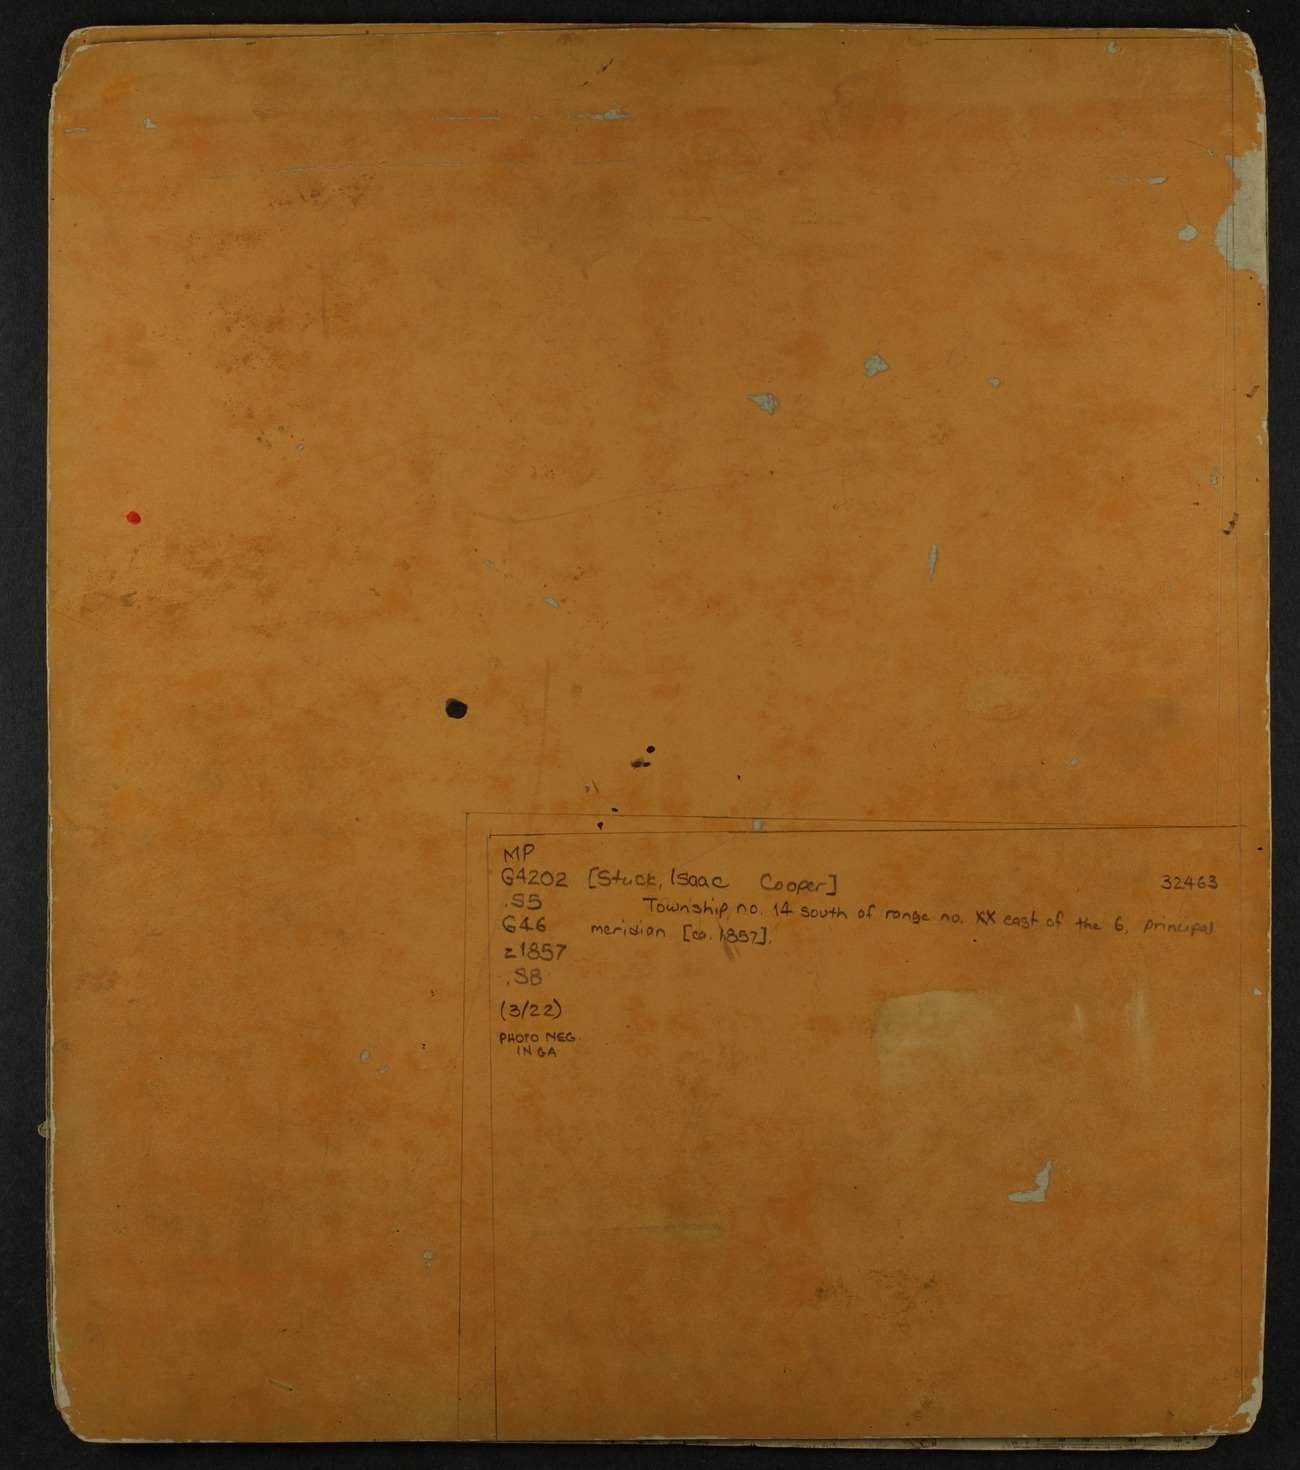 Shawnee Indian reservation plat maps of 1854 - 4